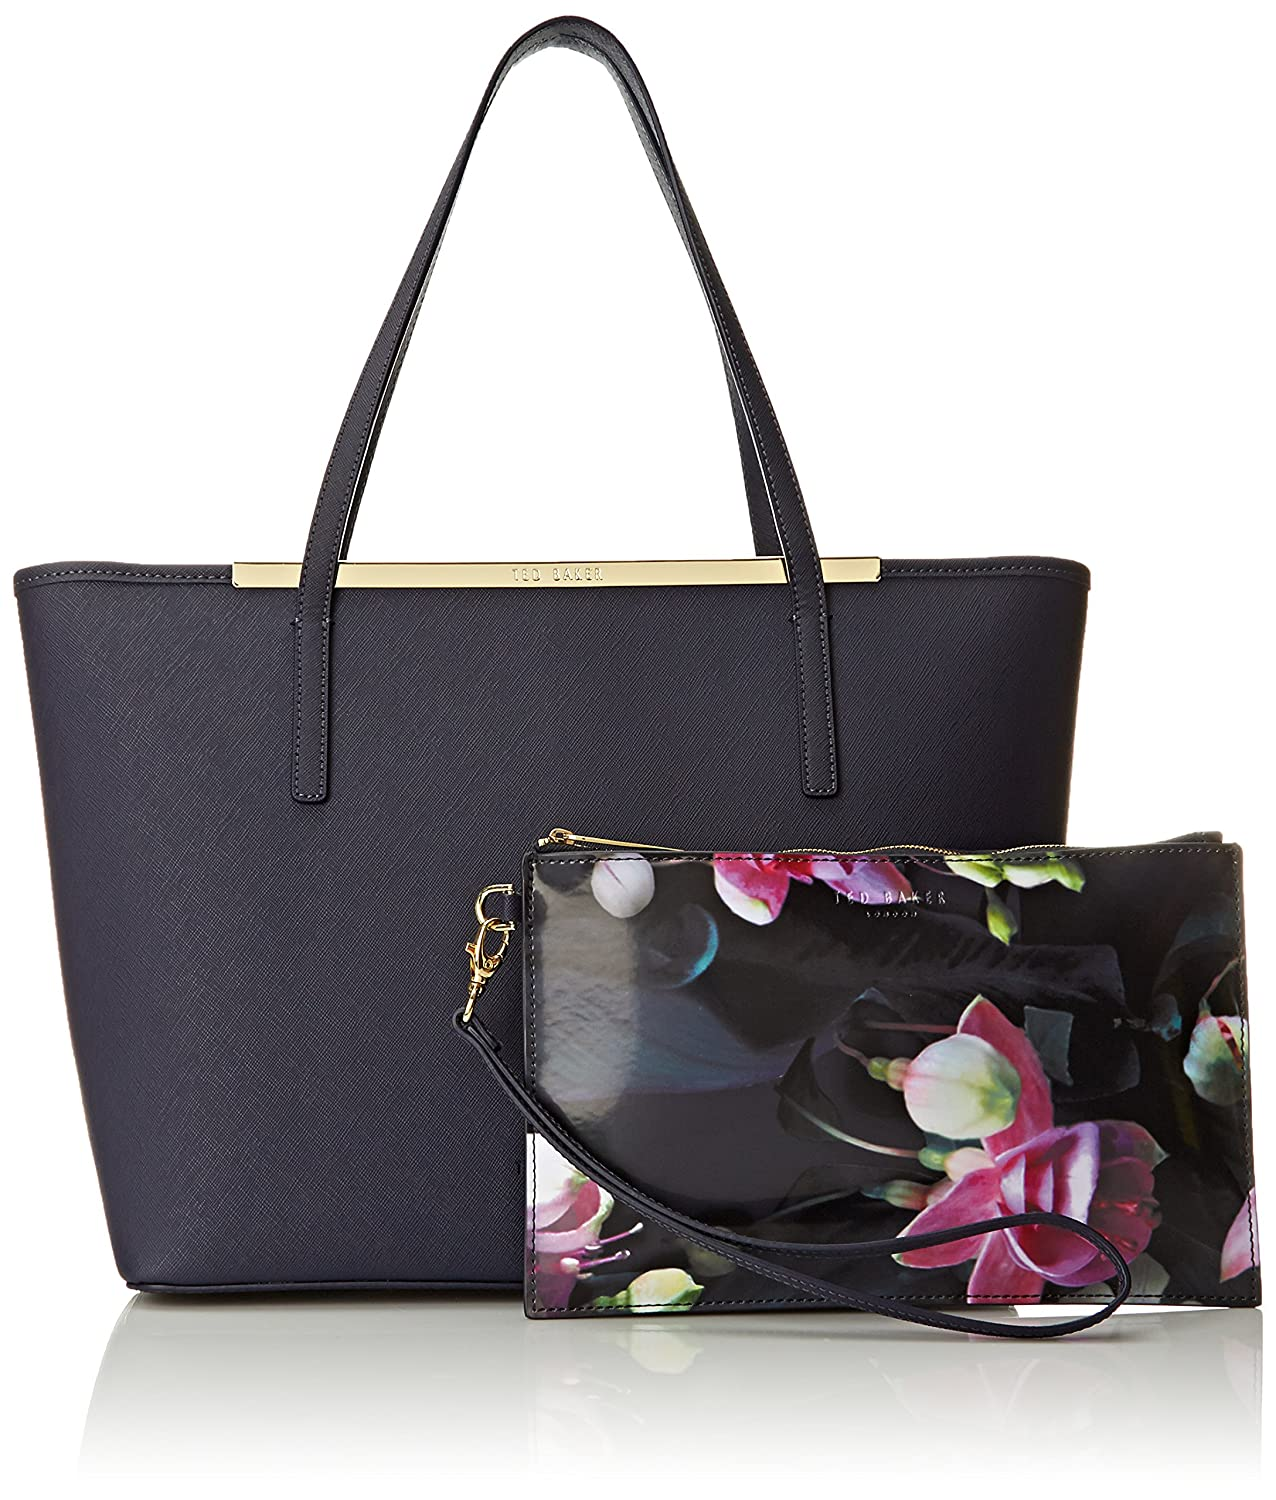 1664c16ab2 Amazon.com: Ted Baker Noelle Large Shopper with Pouch Shoulder Bag, Dark  Blue, One Size: Clothing